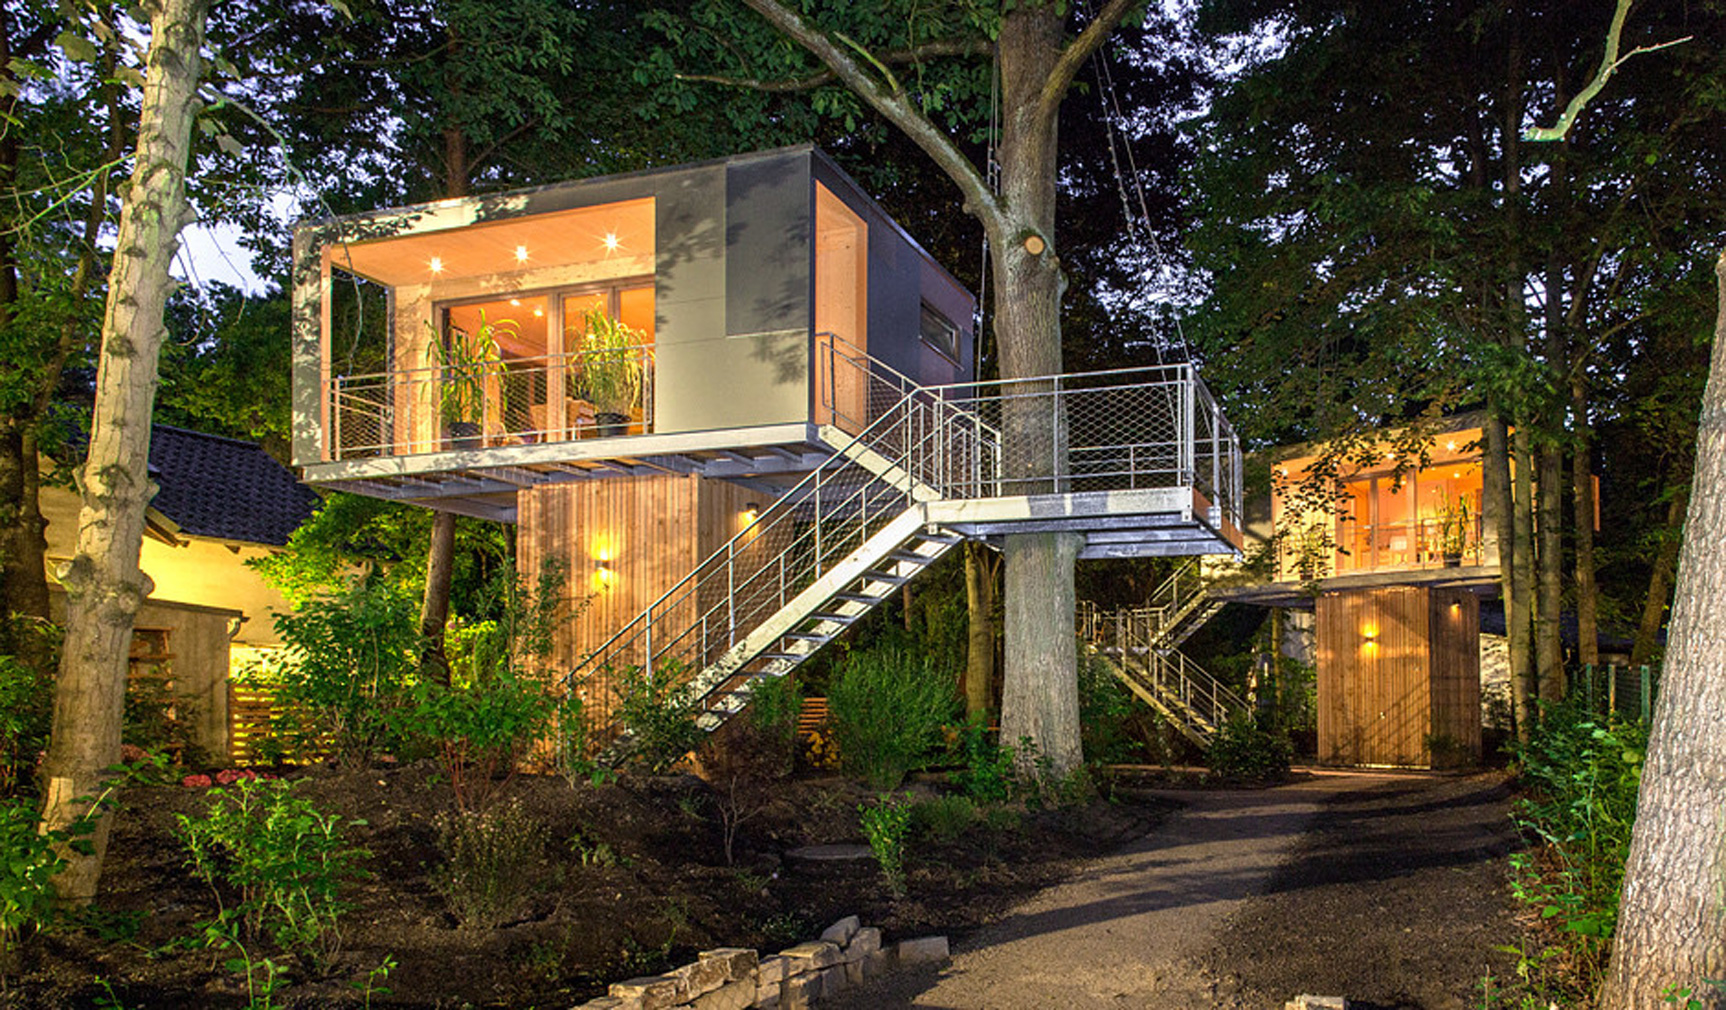 Urban Treehouse Berlin 7 Spectacular Treehouses To Stay In This Summer The Spaces